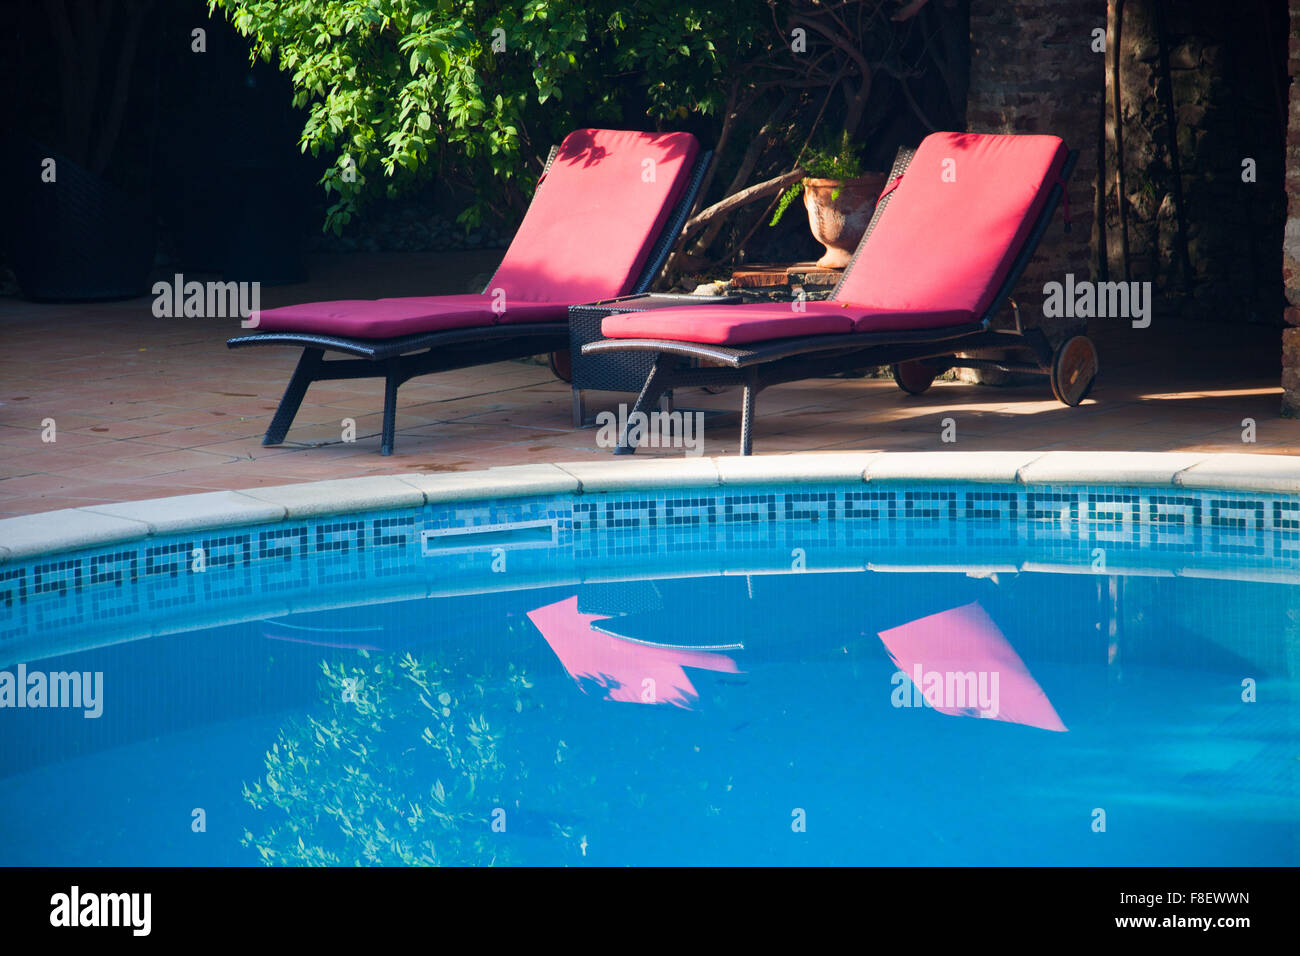 Two red cushioned sun loungers beside a swimming pool - Stock Image